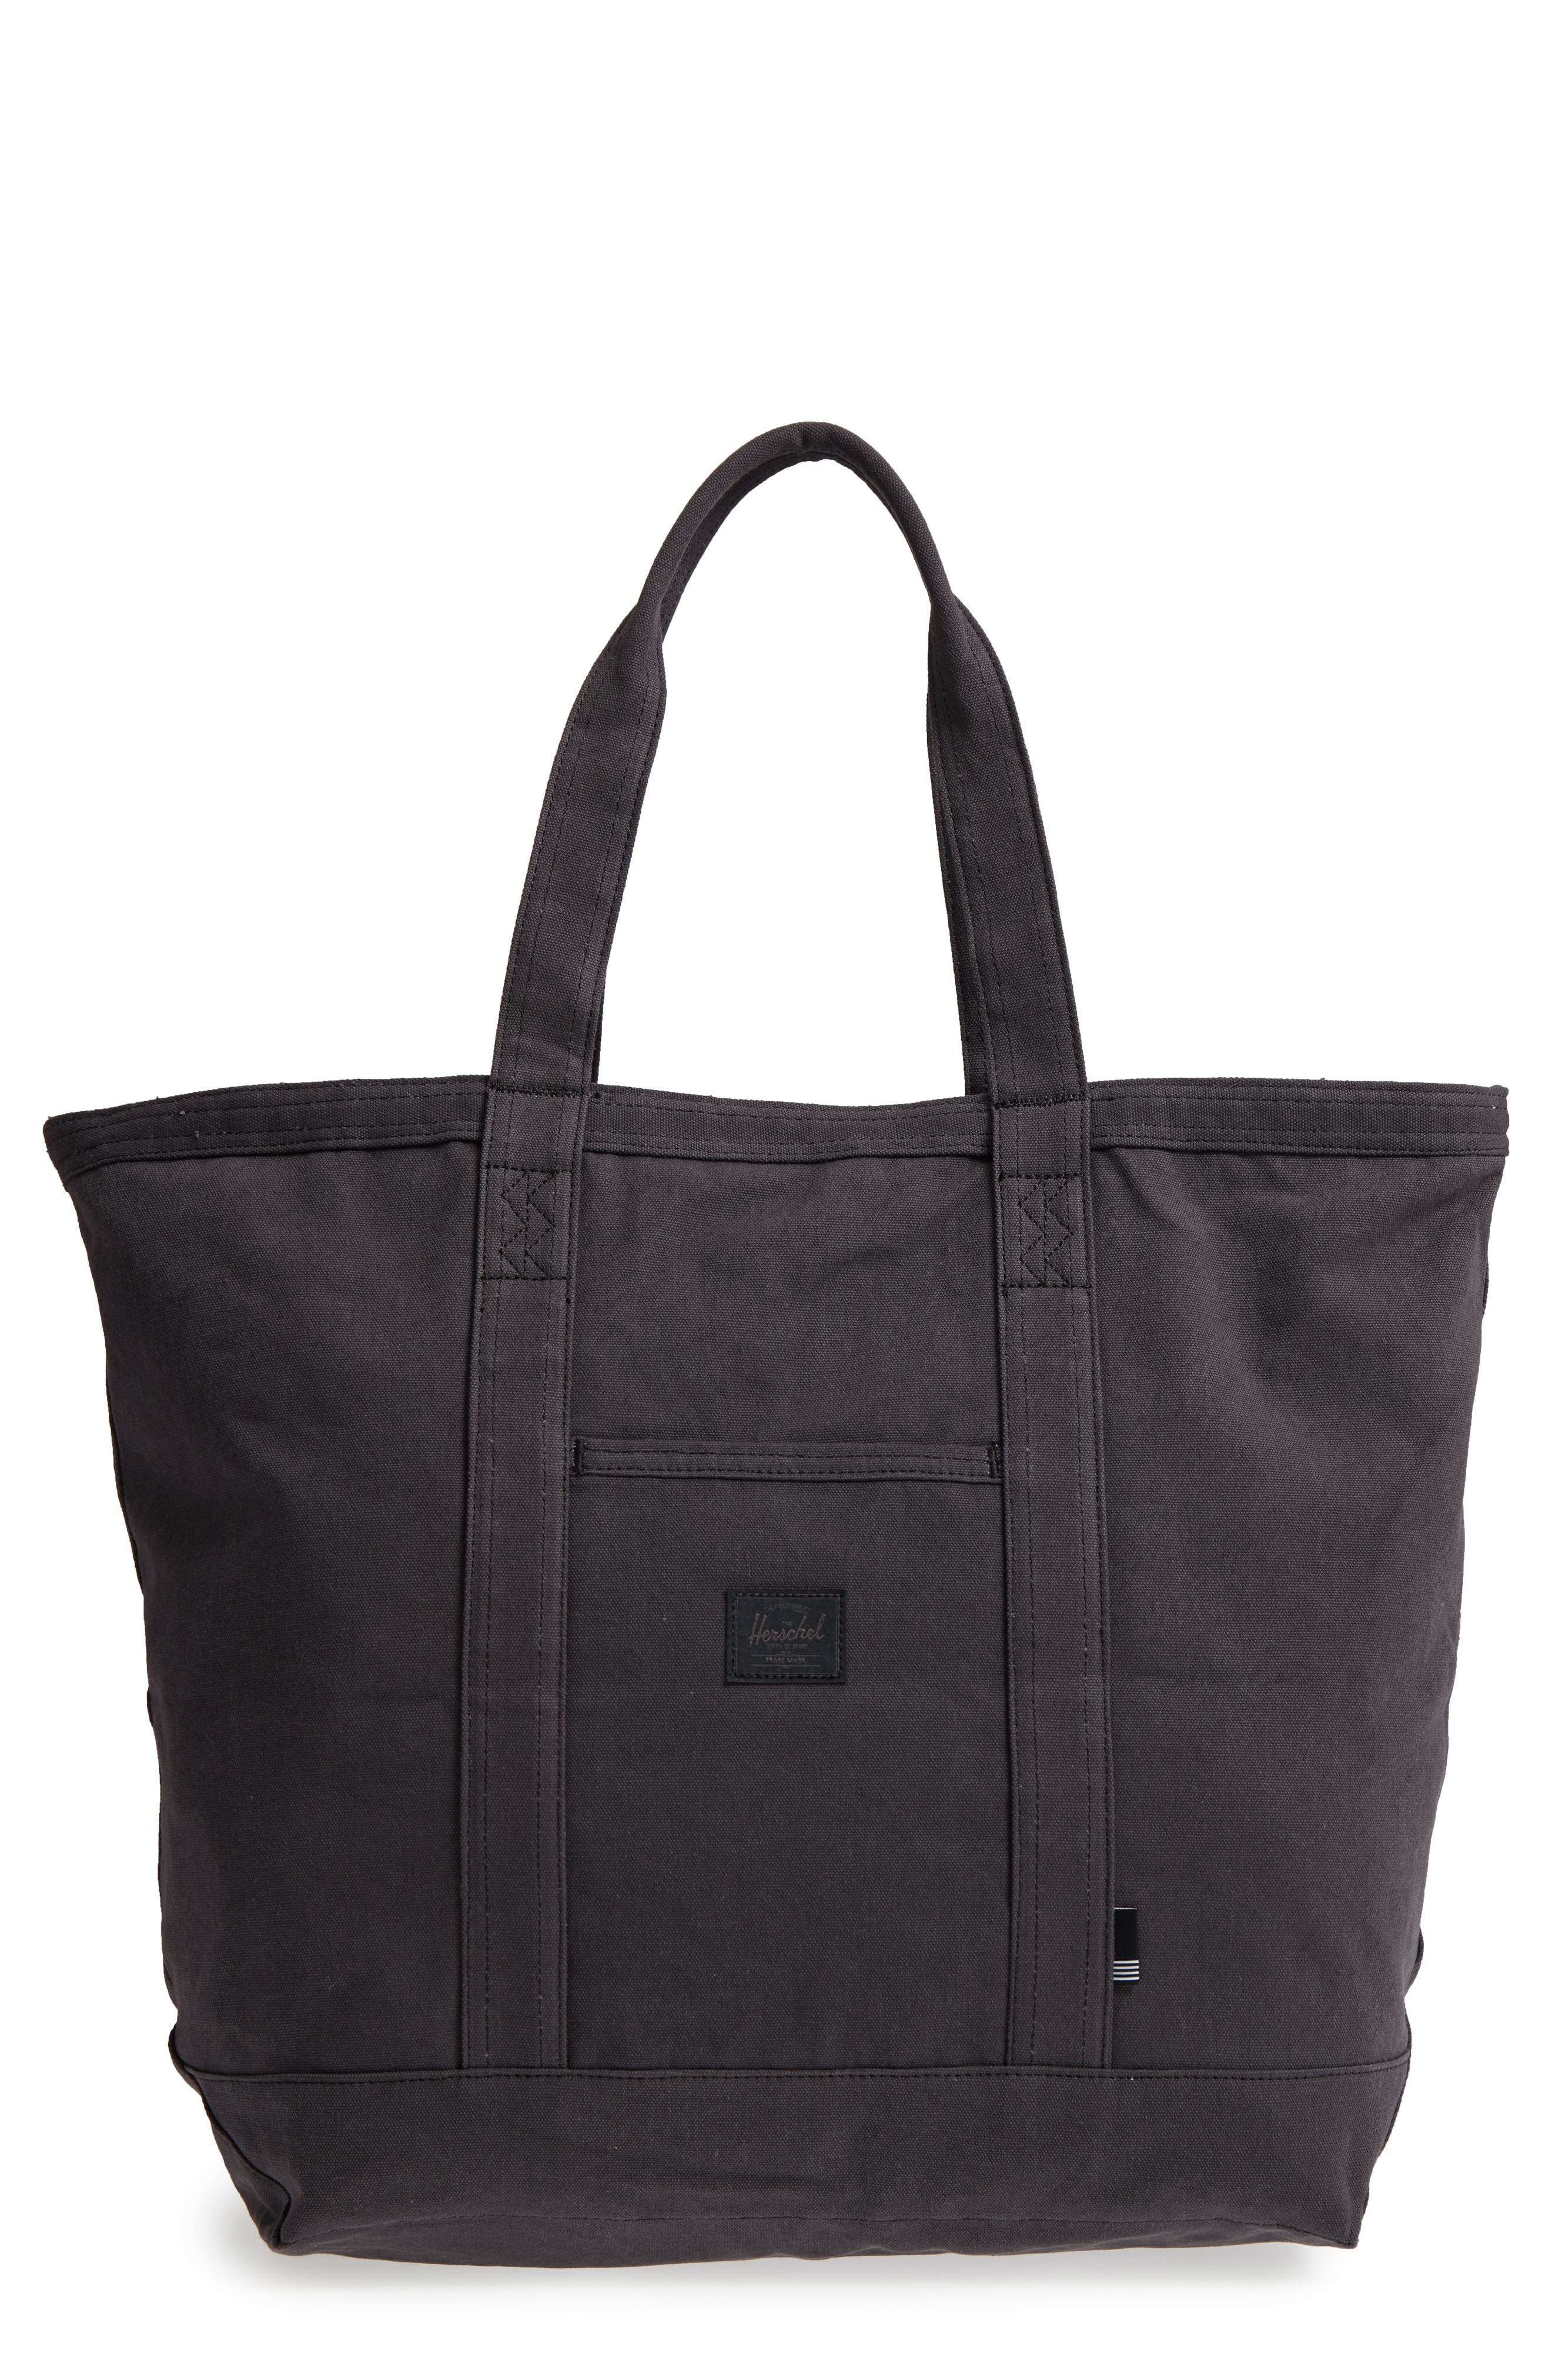 Bamfield Cotton Canvas Tote,                             Main thumbnail 1, color,